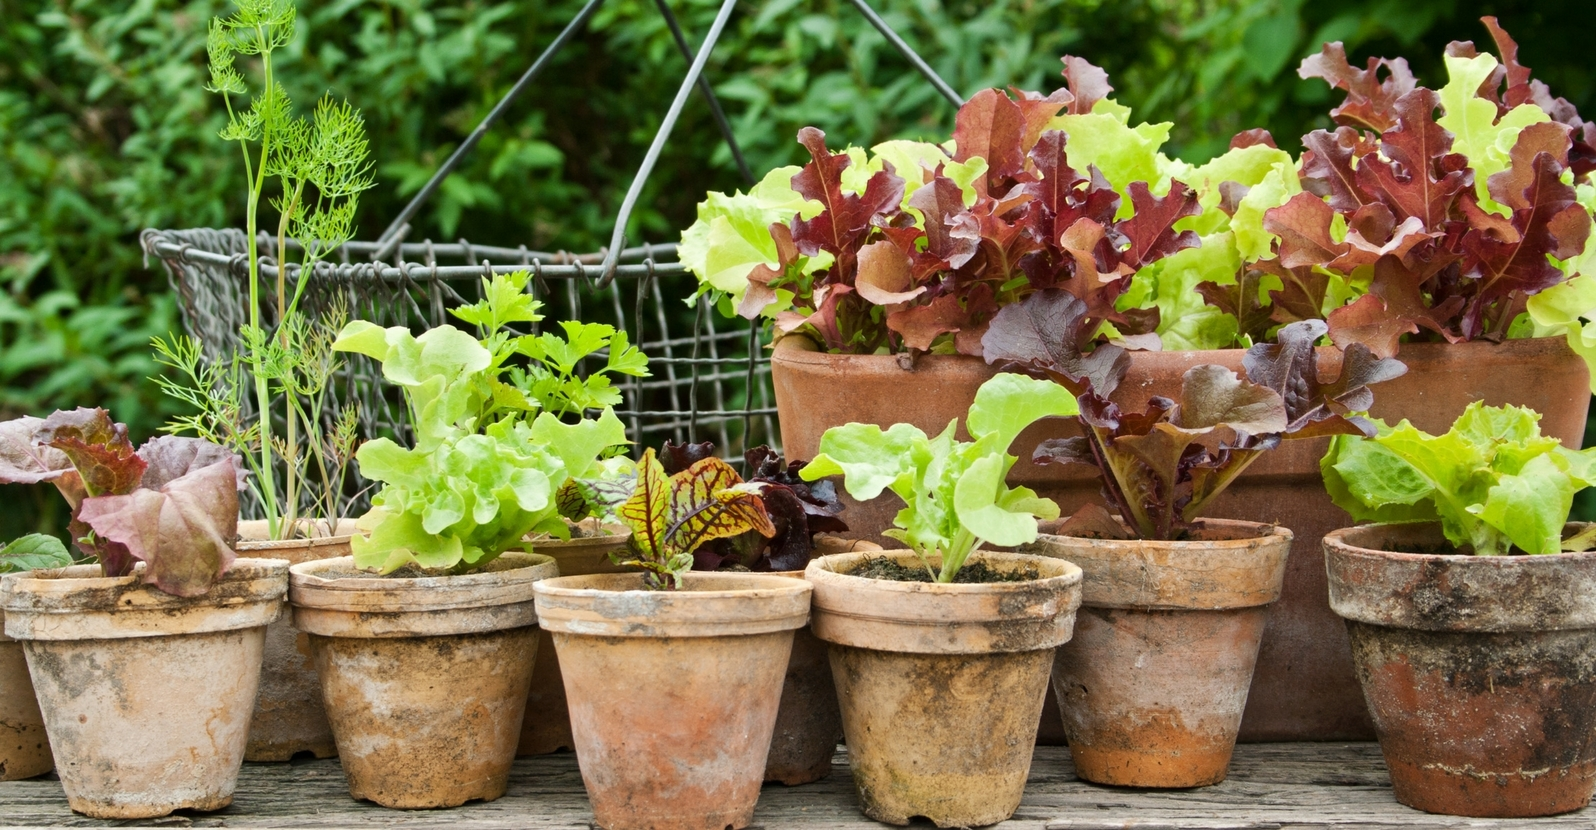 6 Beautiful Edible Plants for Containers